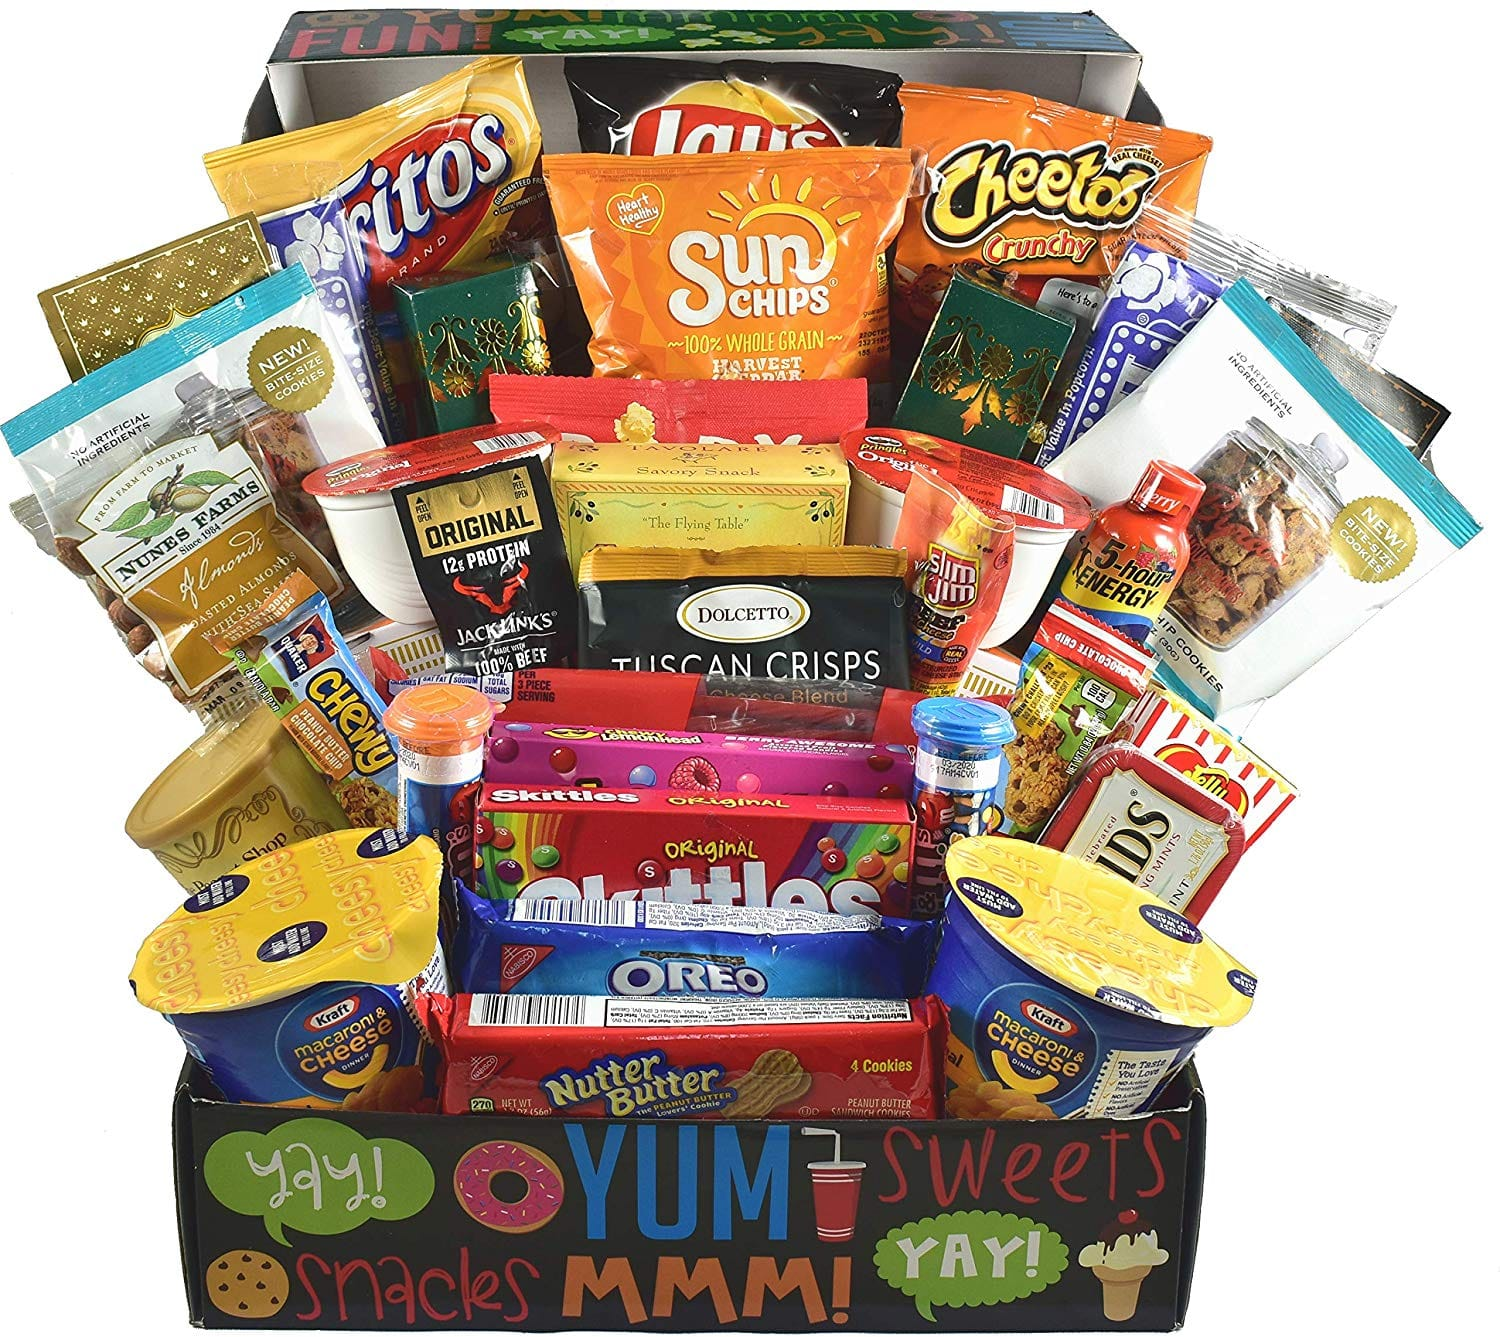 College Care Package - Loaded with Chips, Candy, Microwave Foods, Treats and More, 6 Pounds- $29.50 at Amazon + FS with Prime